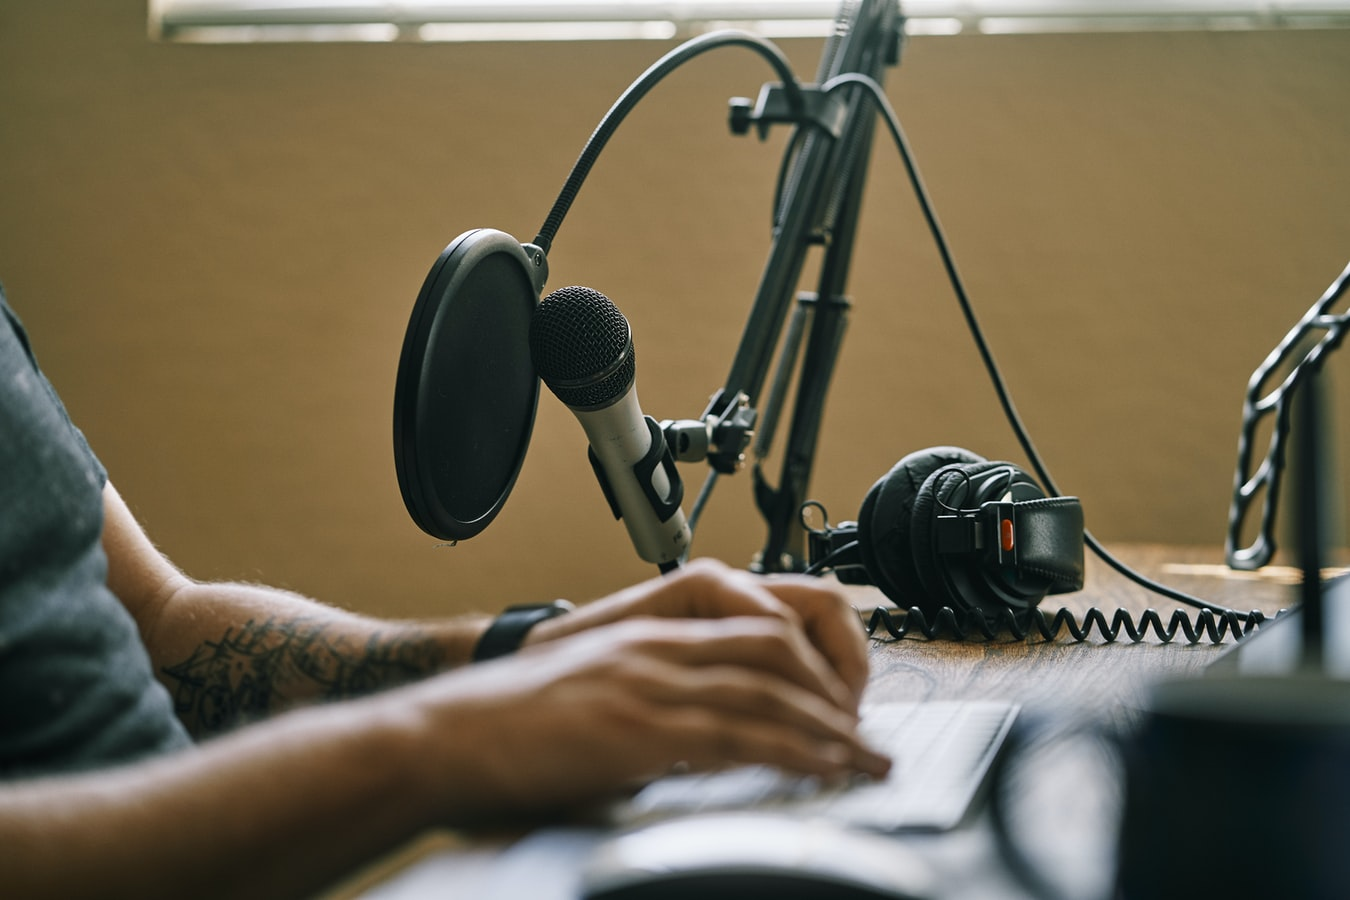 Digital PR: Podcasting in the Era of Round the Clock Covid-19 Coverage